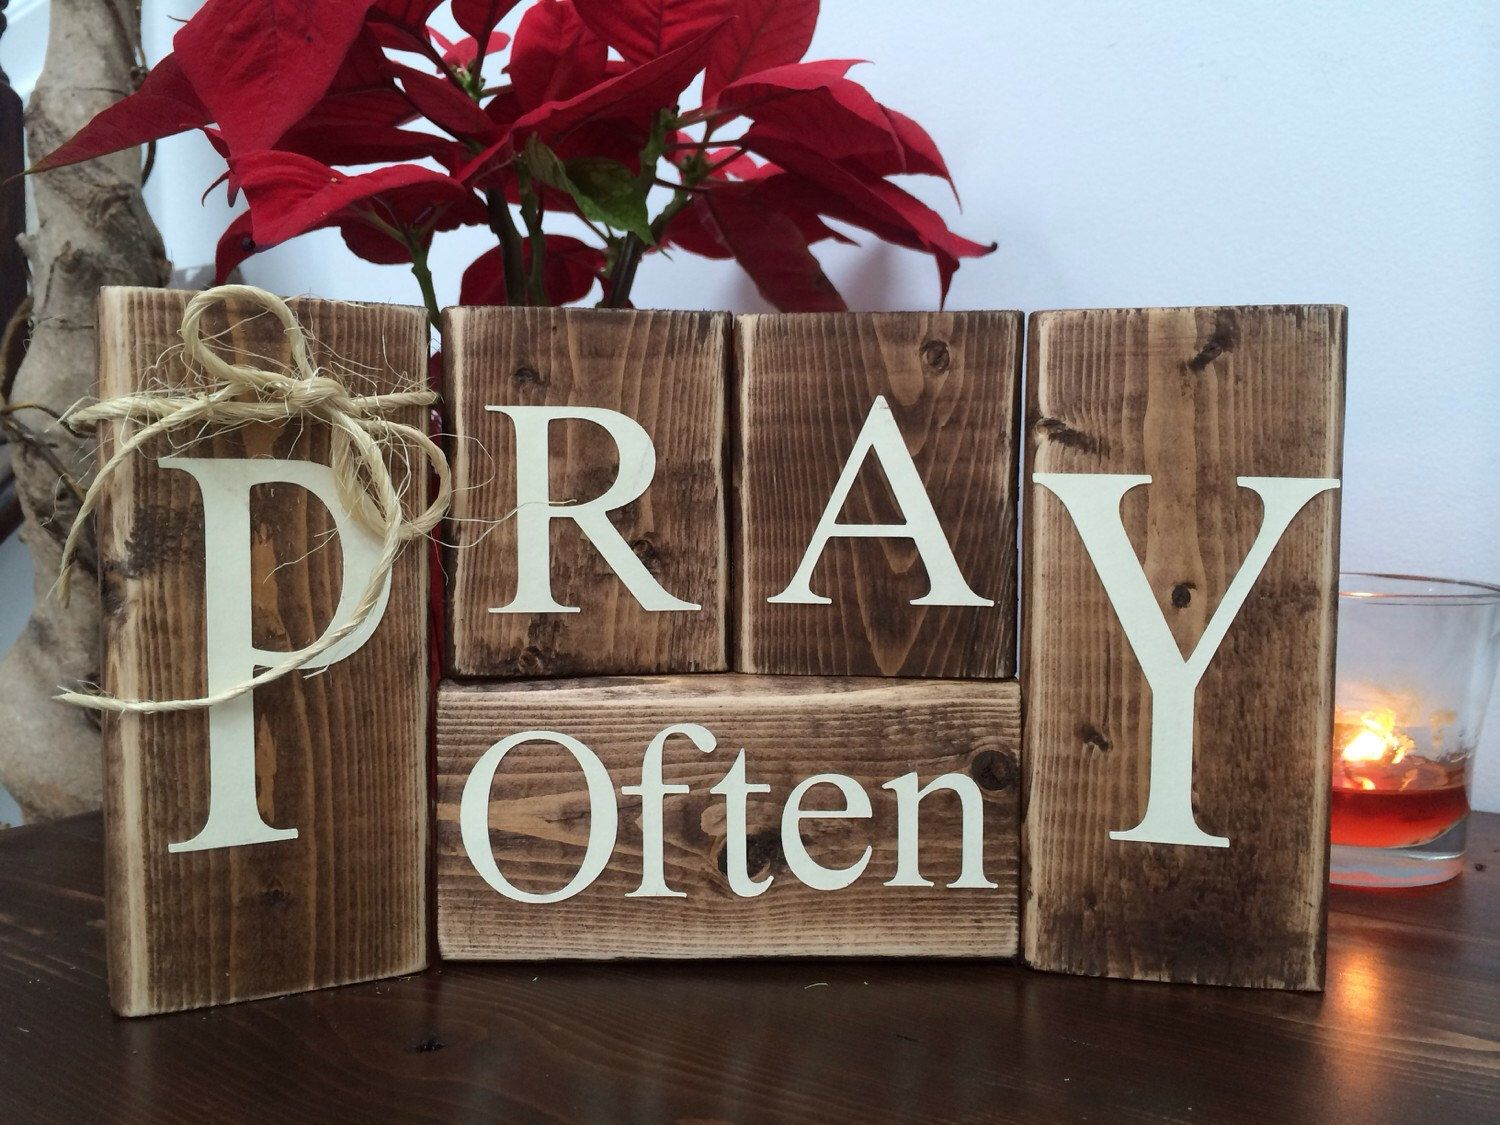 Pray often wood blocks home decor inspirational rustic for Where to buy wood blocks for crafts